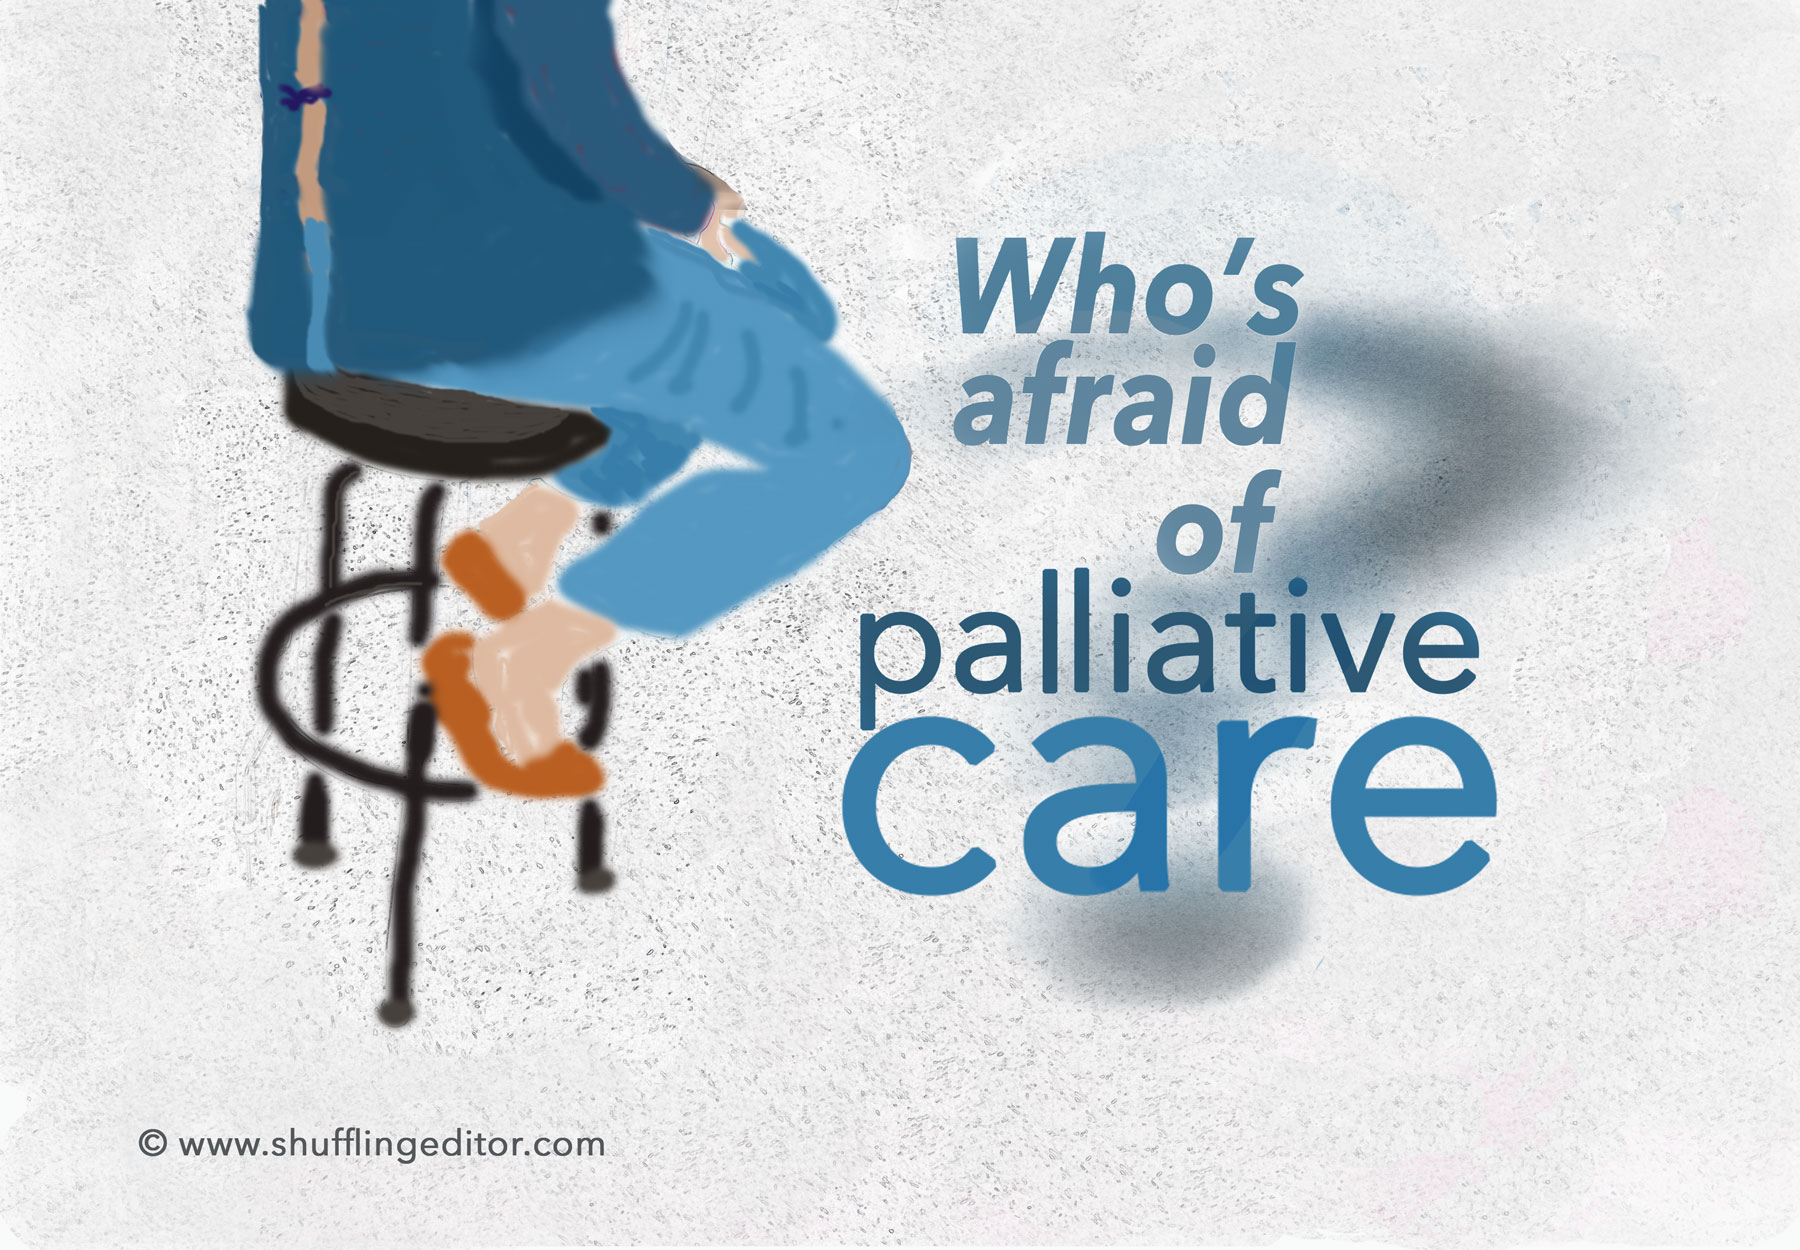 whos-afraid-of-palliative-care